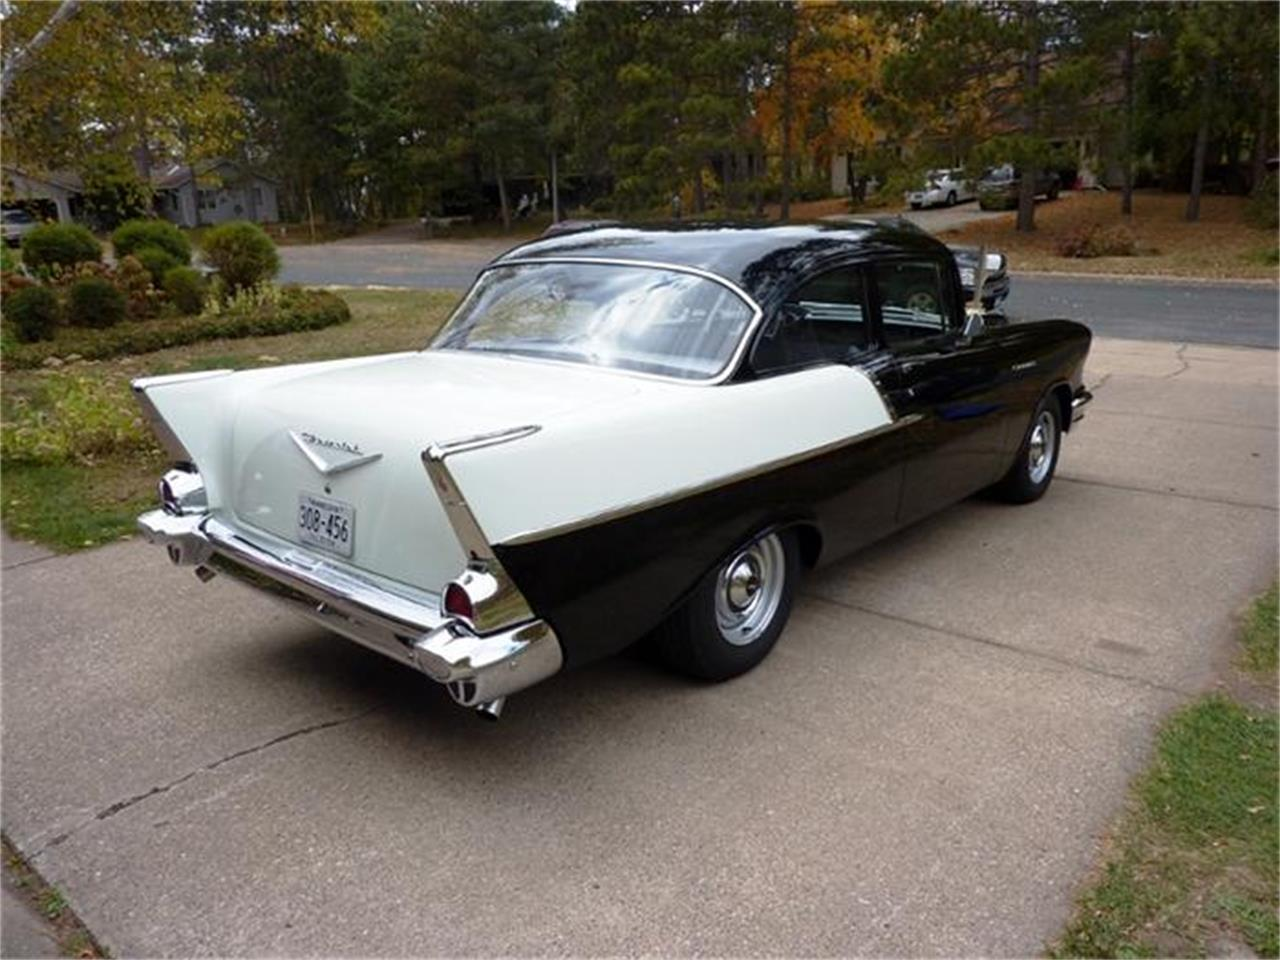 Large Picture of '57 Chevrolet Bel Air - $55,000.00 - 9JRH